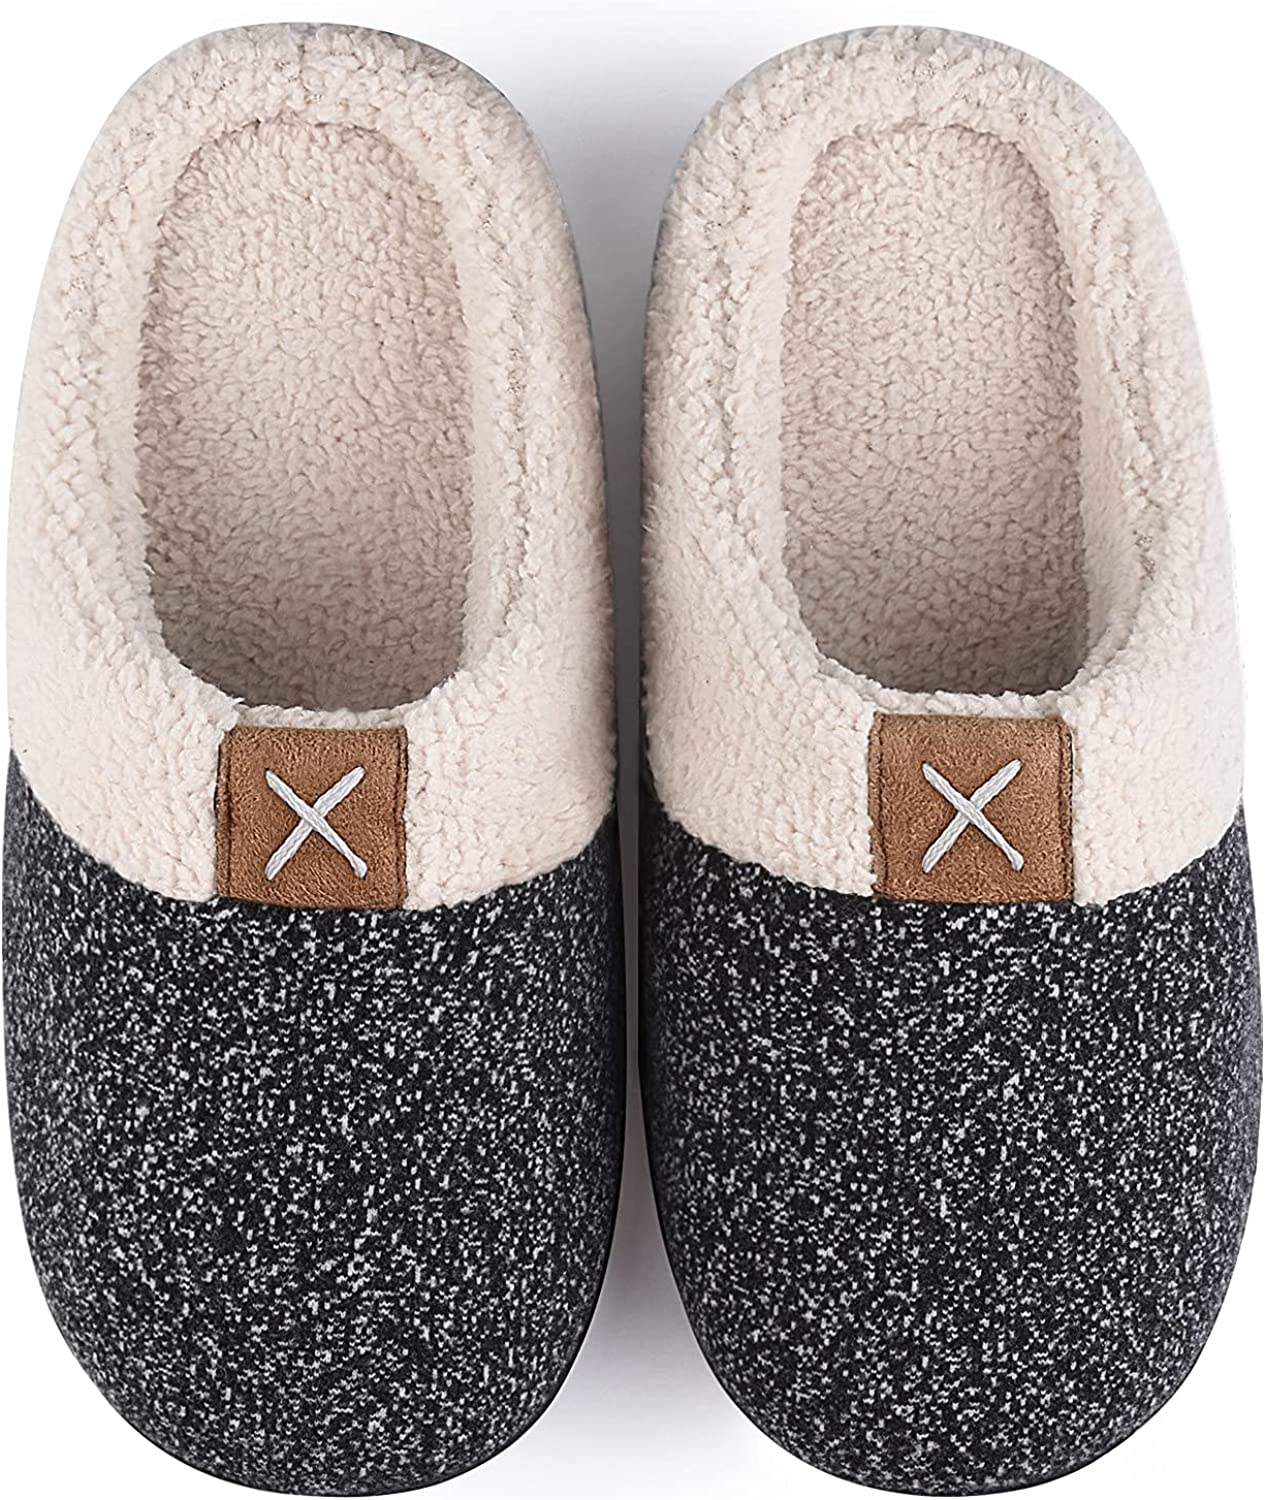 Slippers Discount is also underway Max 85% OFF for Women Arch Support Slipp Bedroom Fluffy Woman House